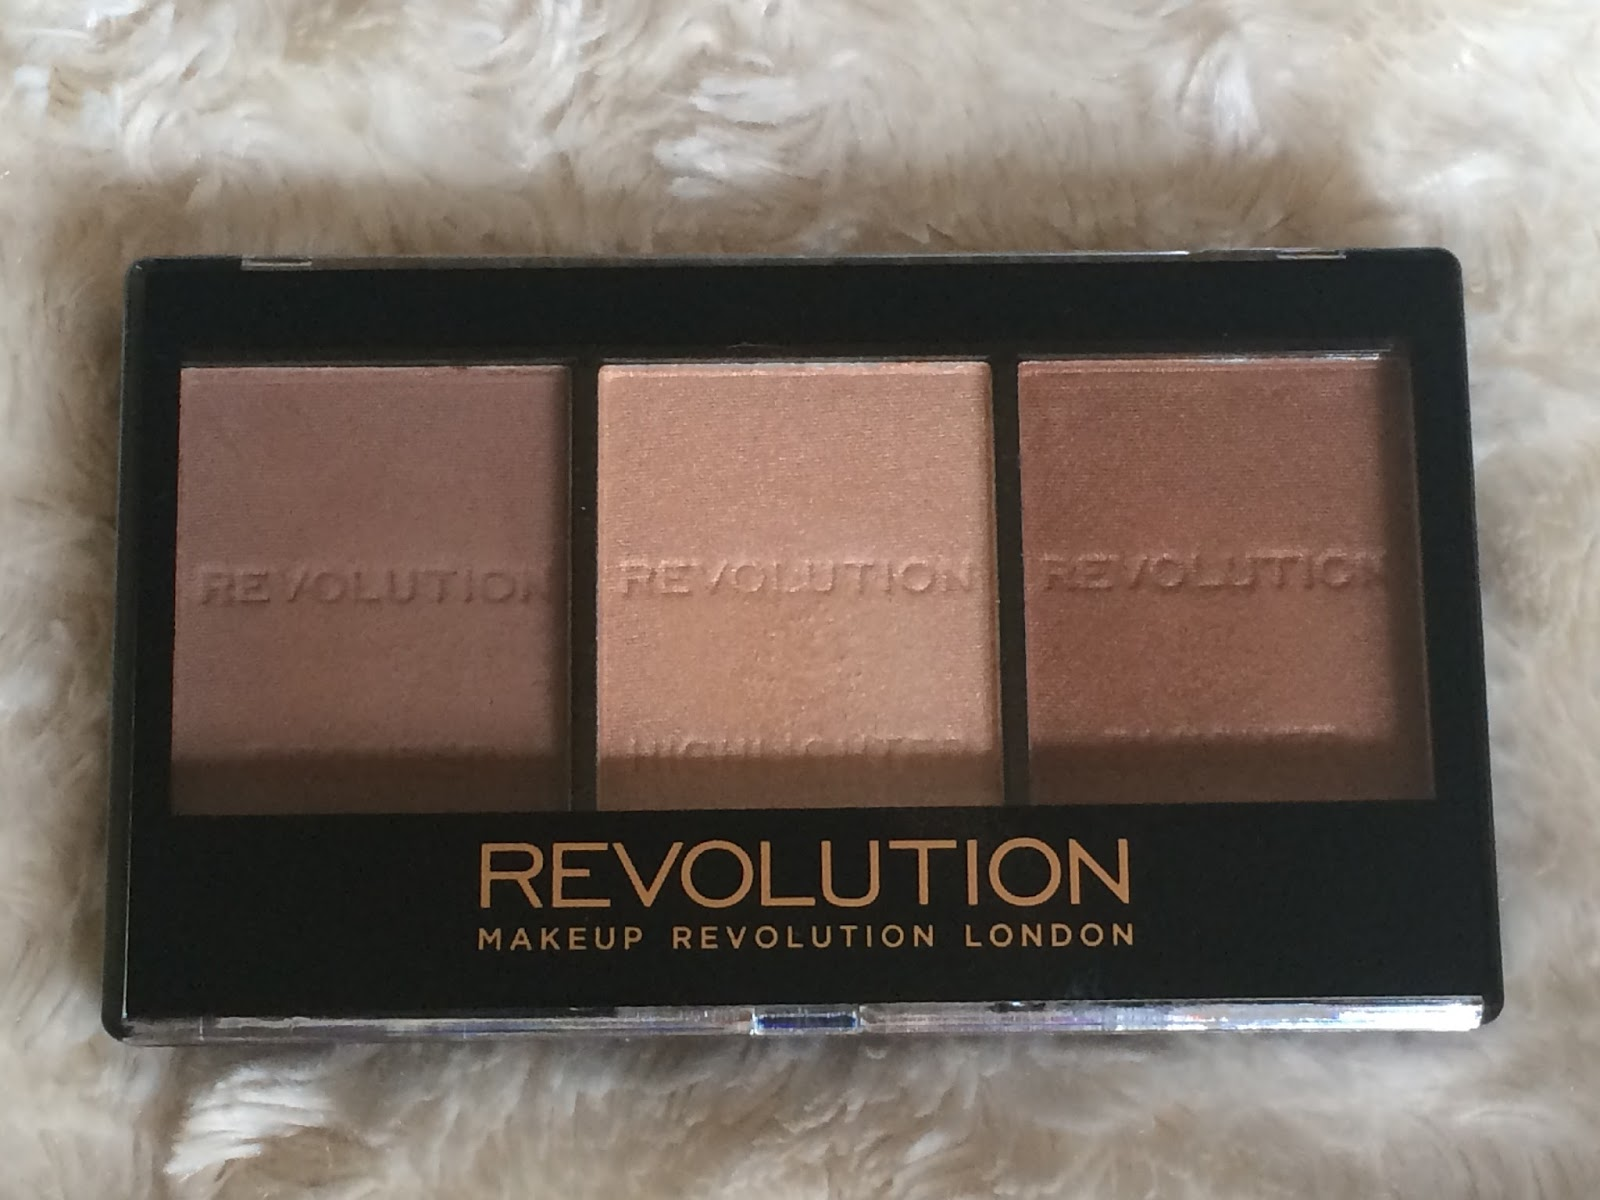 MAKEUP REVOLUTION SCULPT & CONTOUR REVIEW